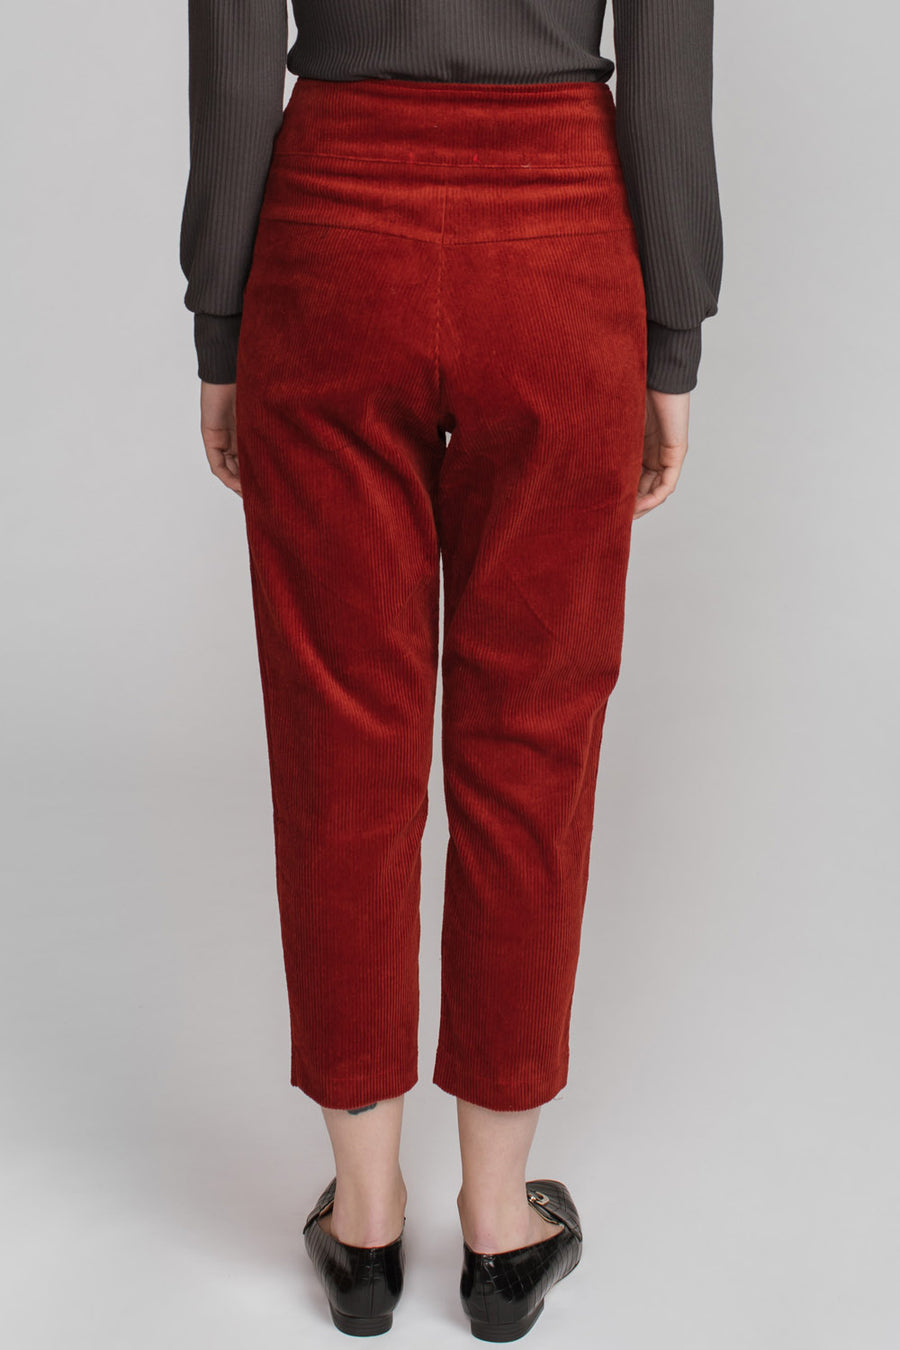 Cagney Pant